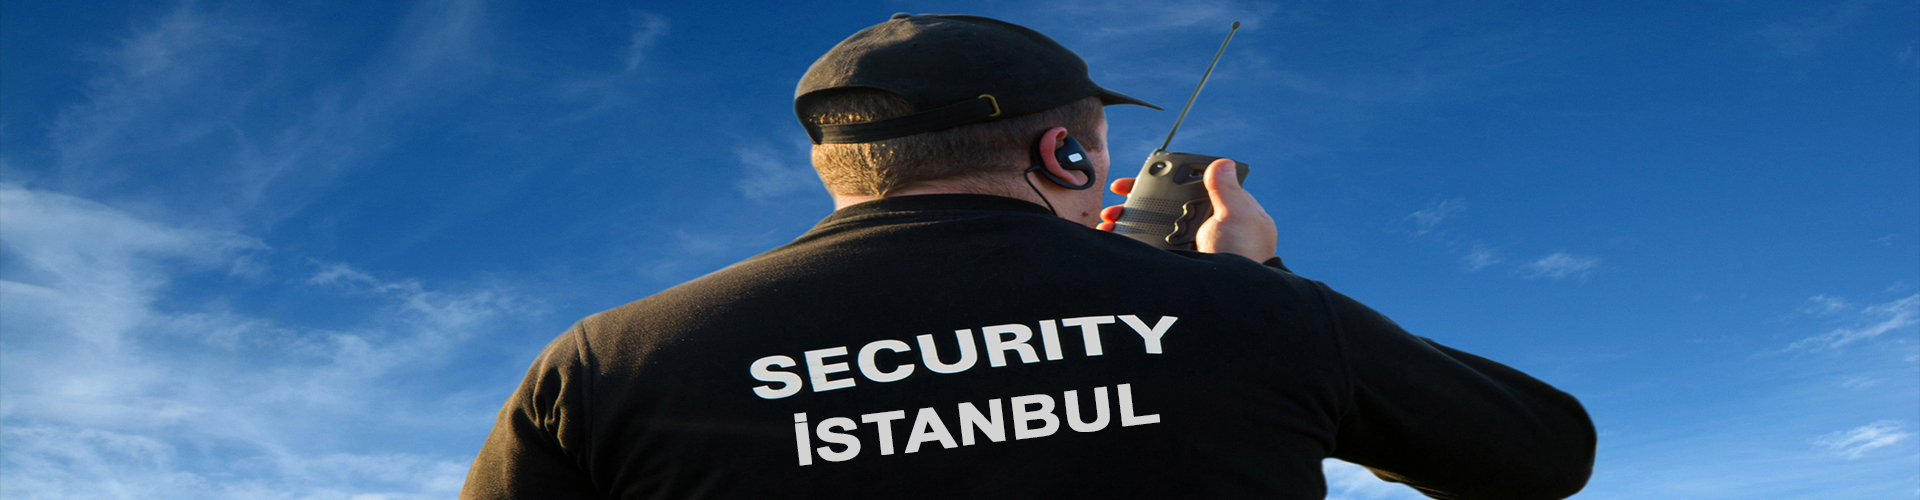 security,istanbul,turkey,protection,guide